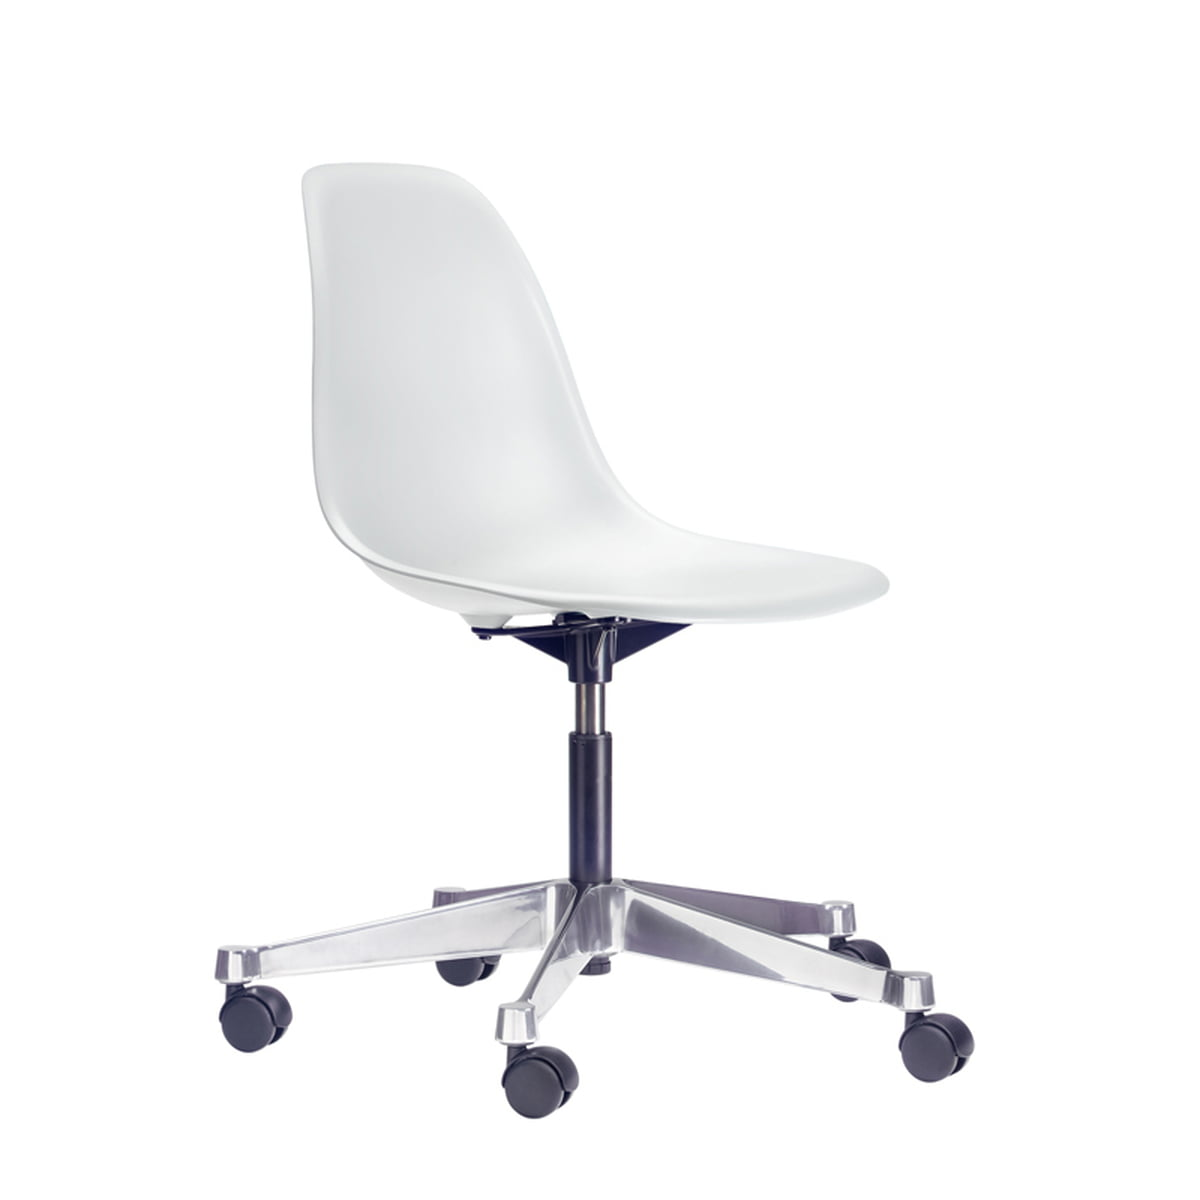 Vitra   Eames Plastic Side Chair PSCC, White